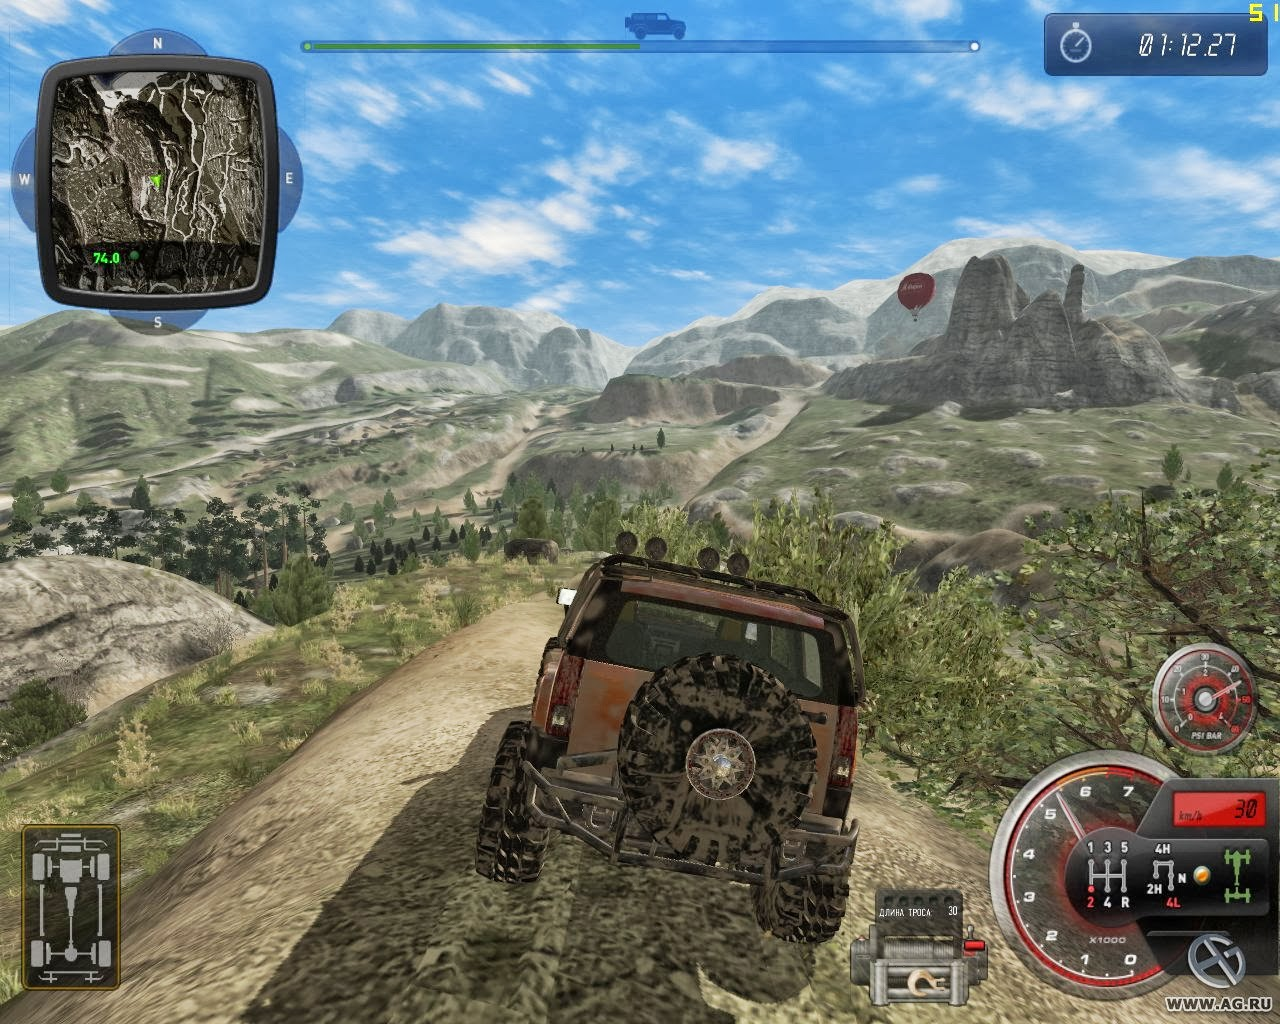 Car Racing Games For PC Free Download - Full Version Download